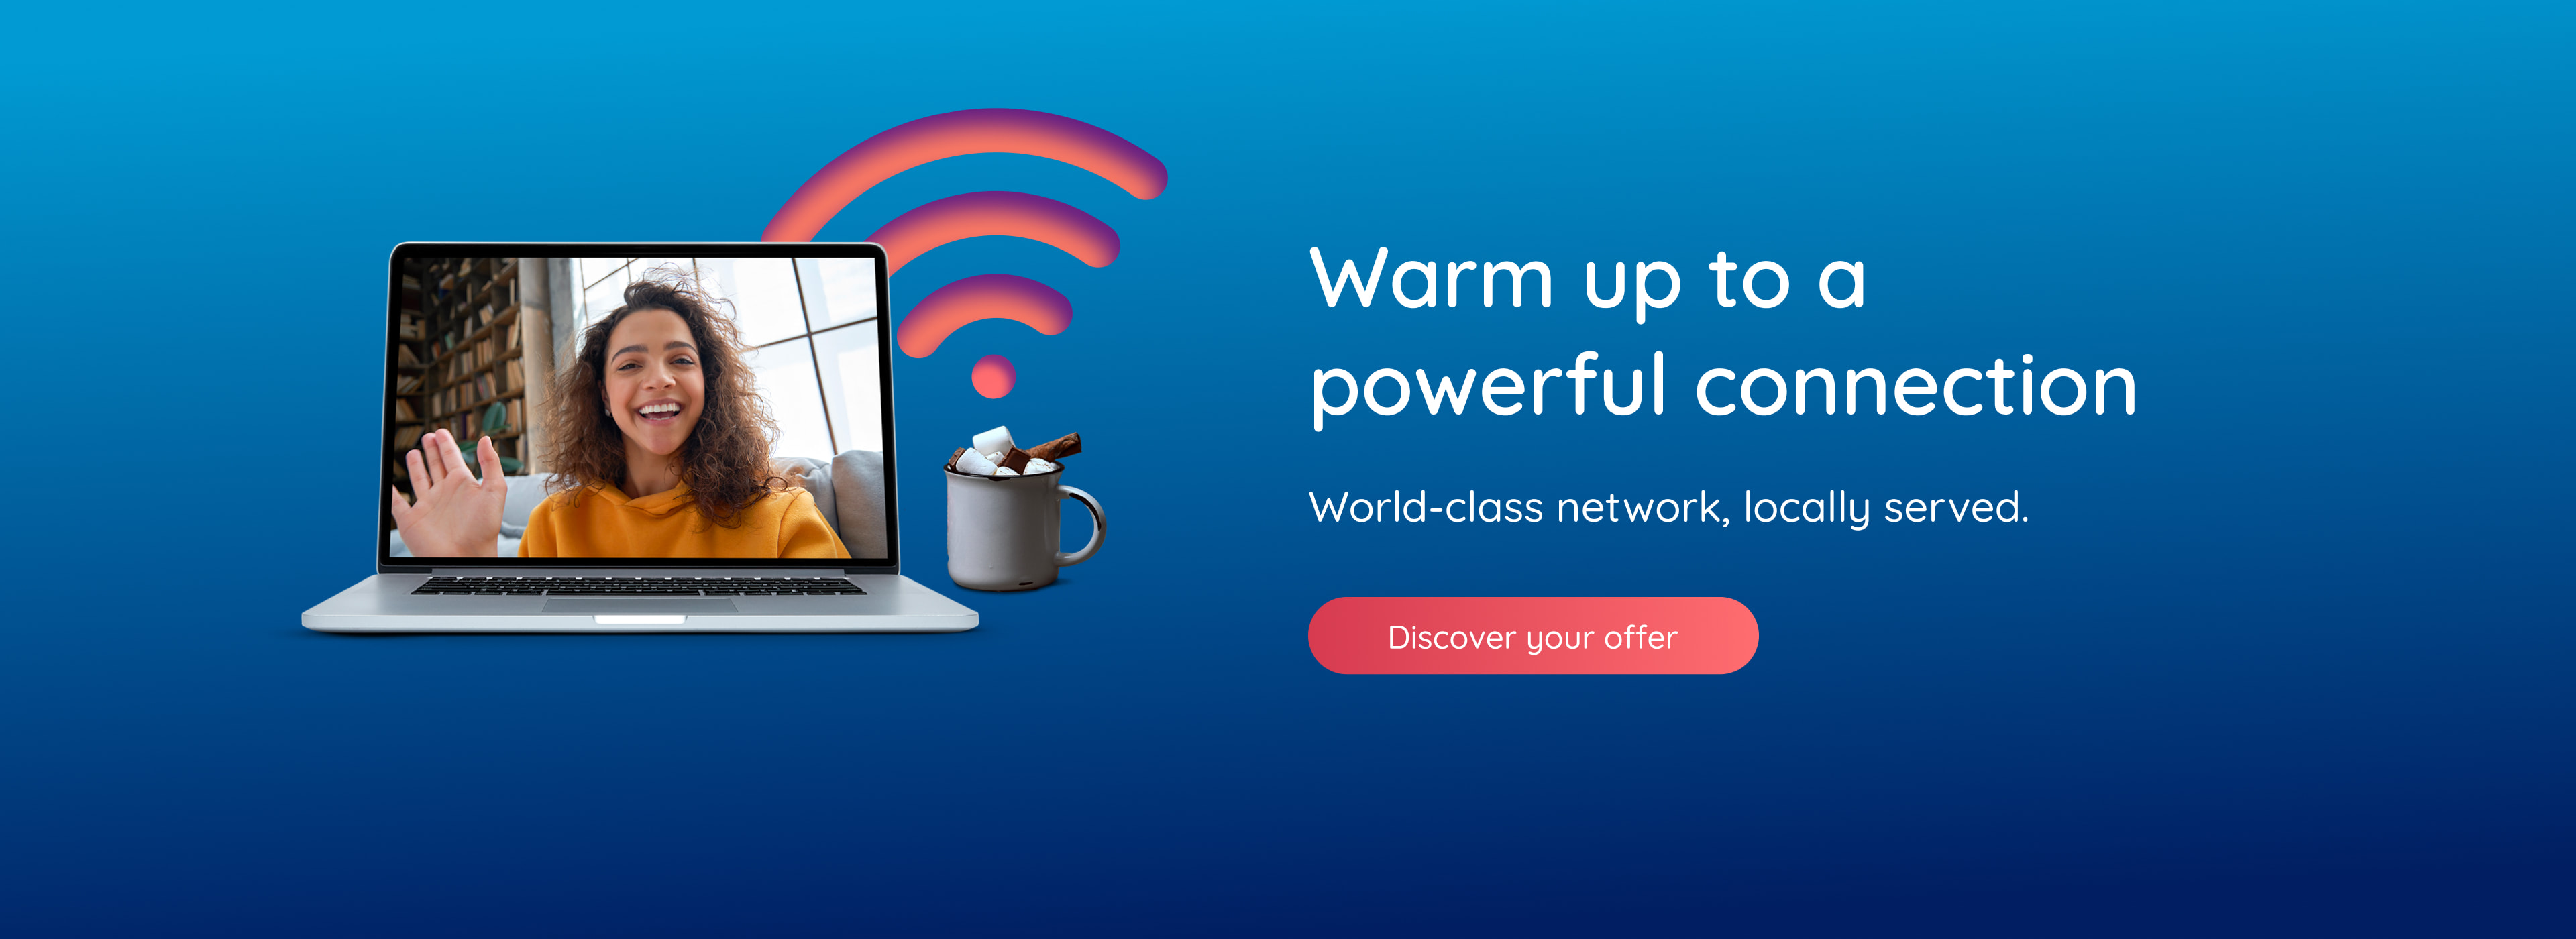 Warm up to a powerful connection. Discover your offer